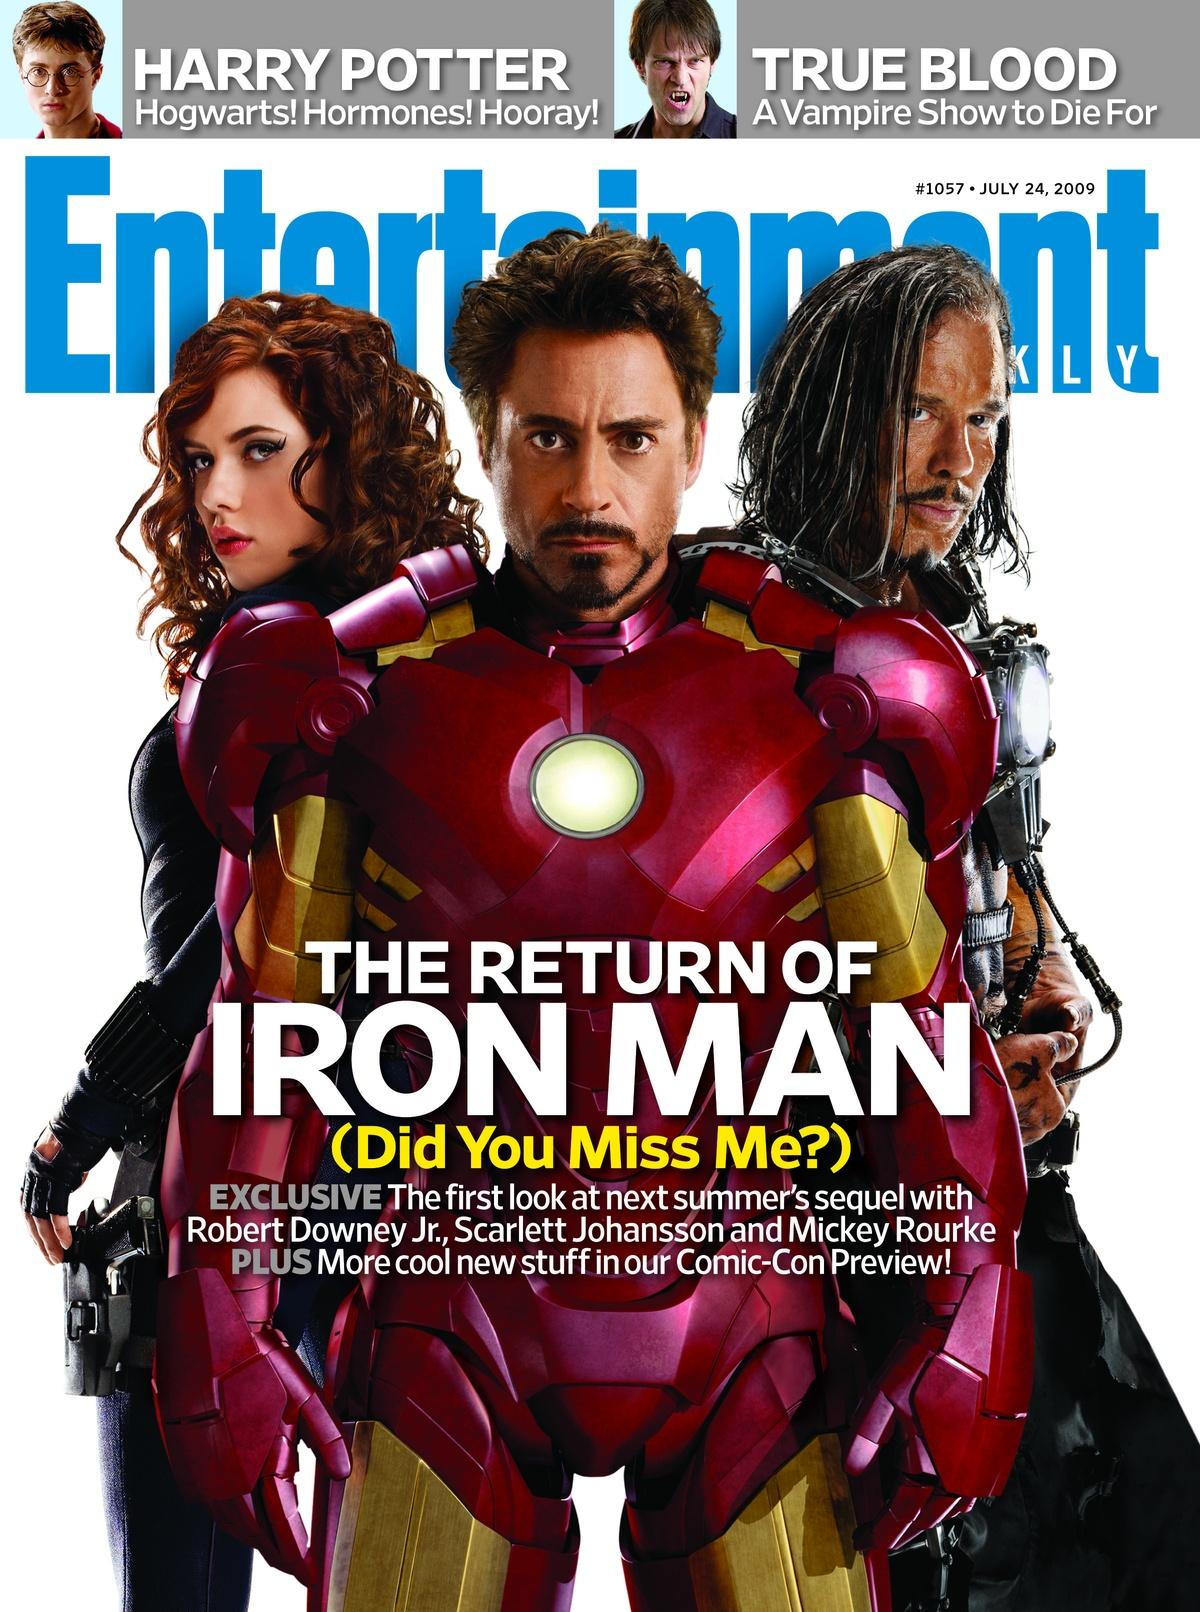 http://filmgeek.fr/wp-content/uploads/2009/07/ew-cover-iron-man-2-black-widow-scarlett-johansson.jpg